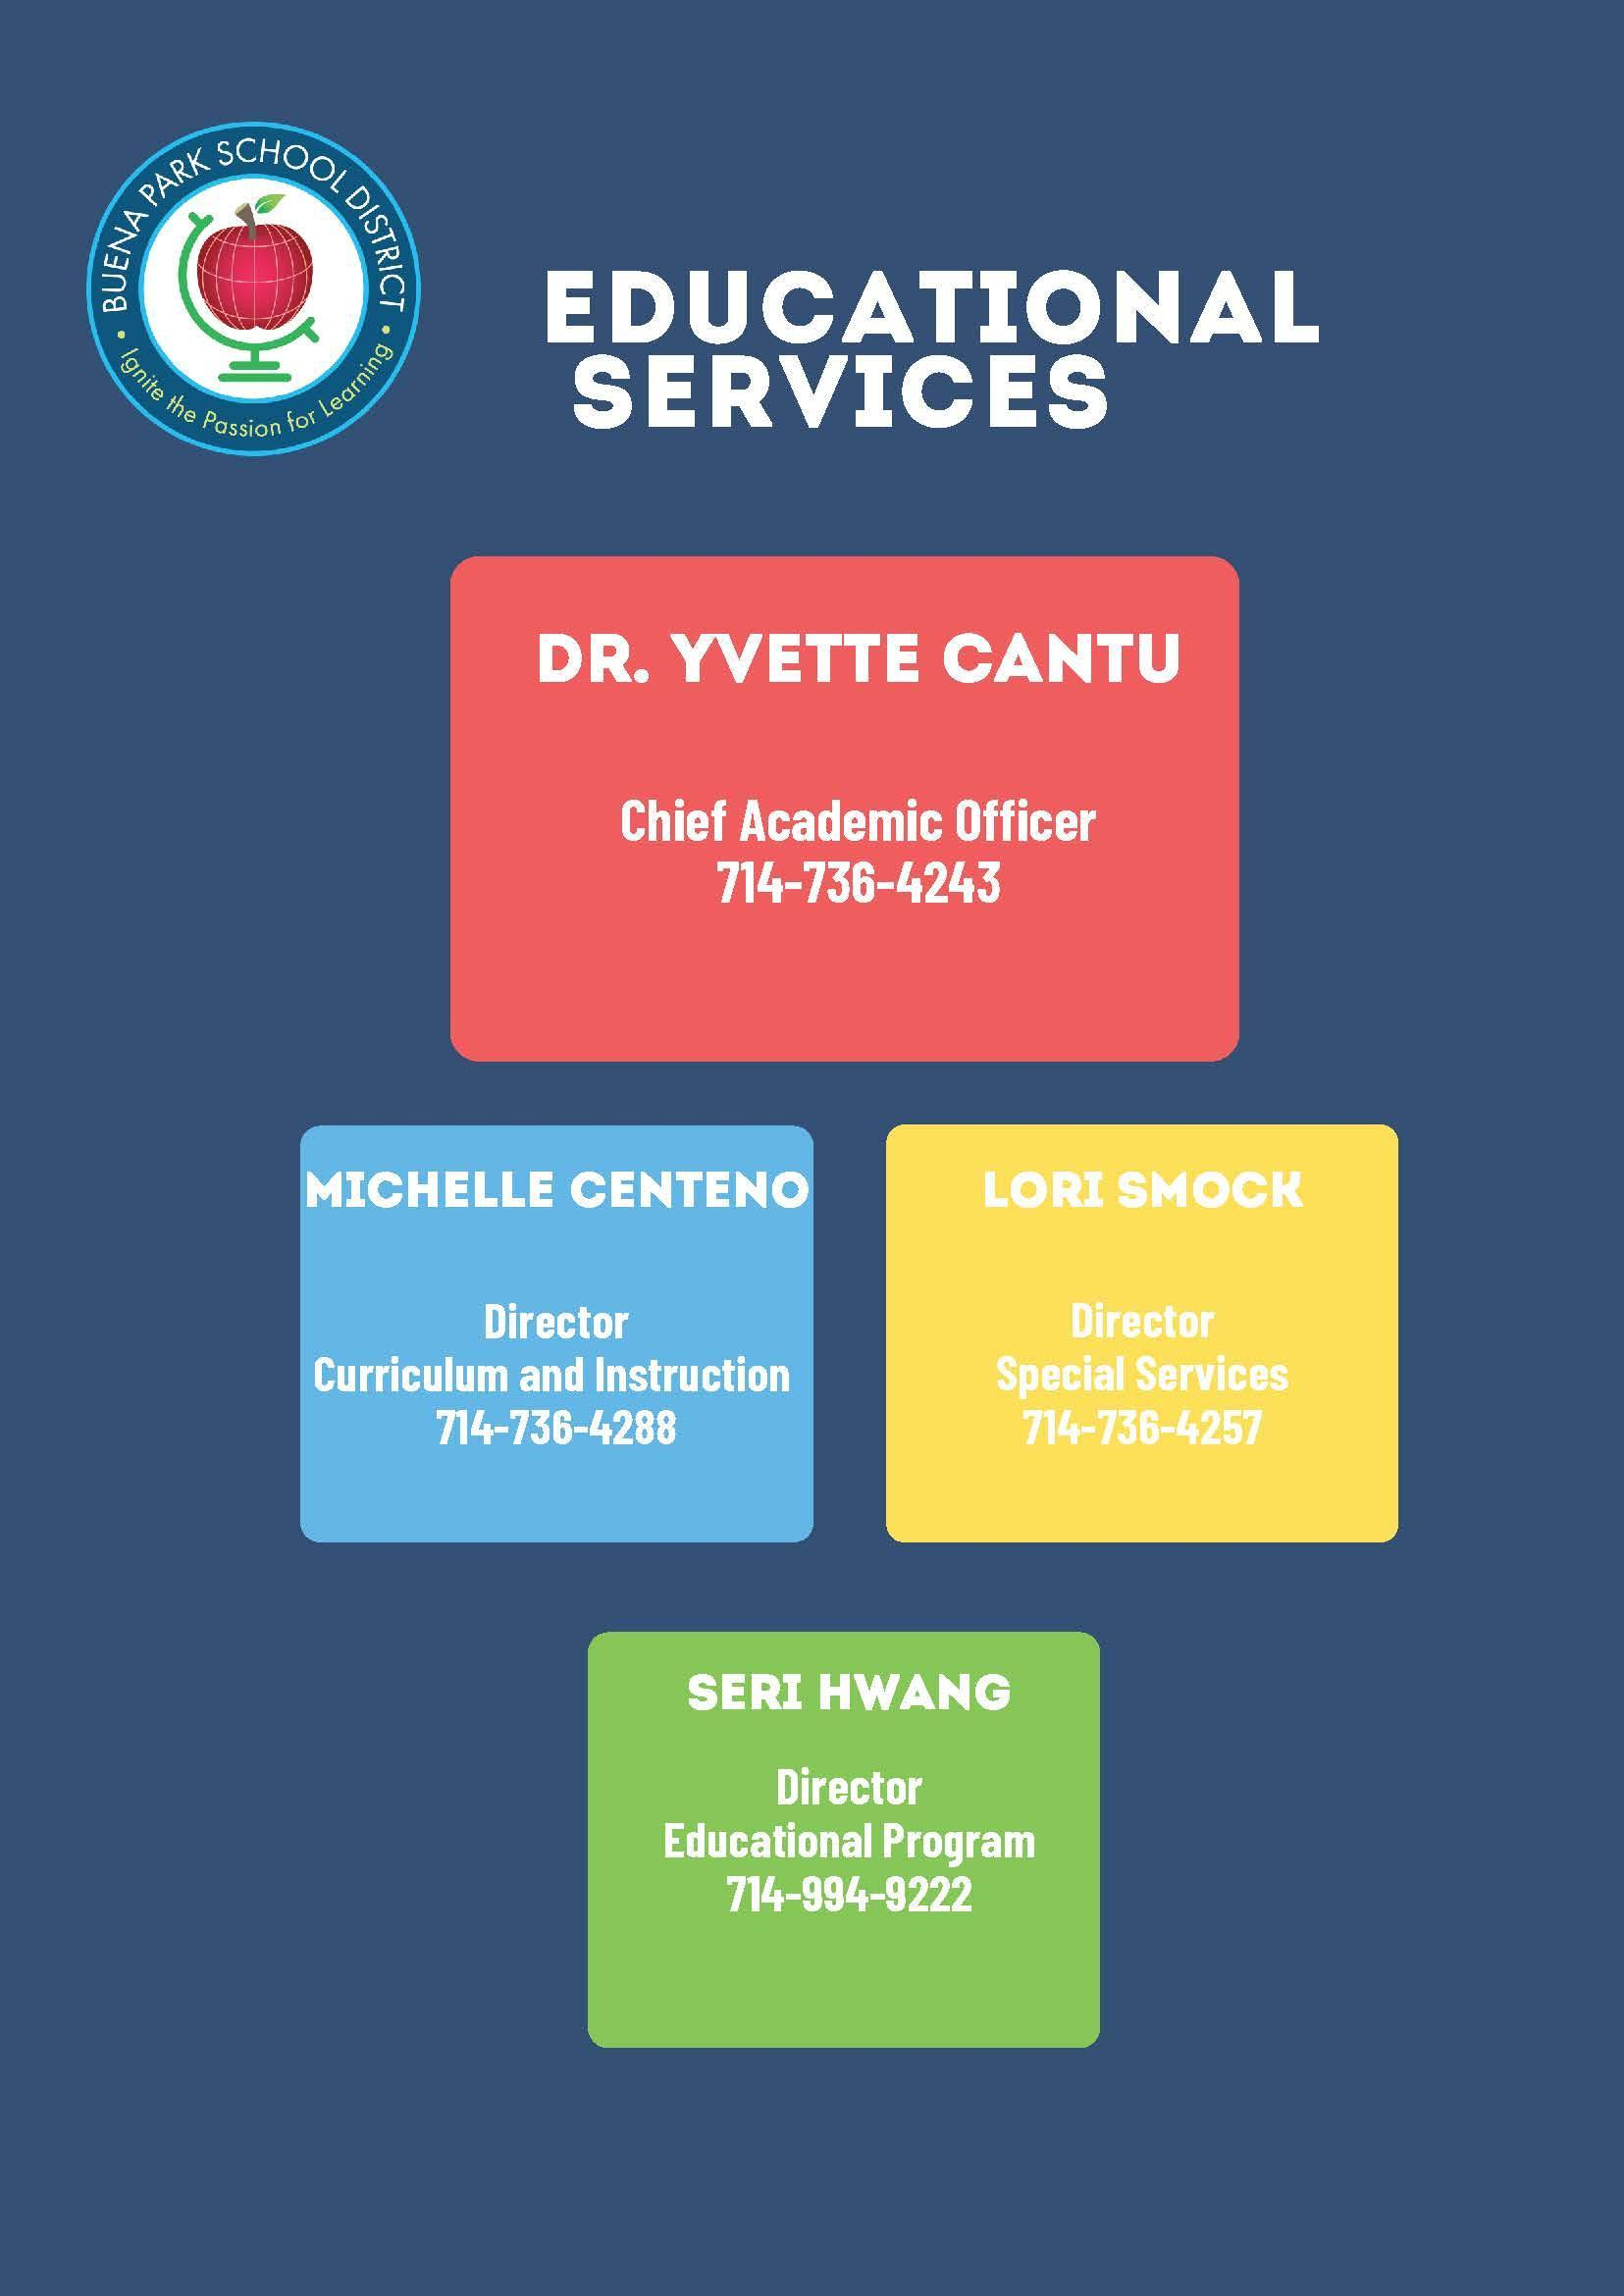 Contact information for Educational Services